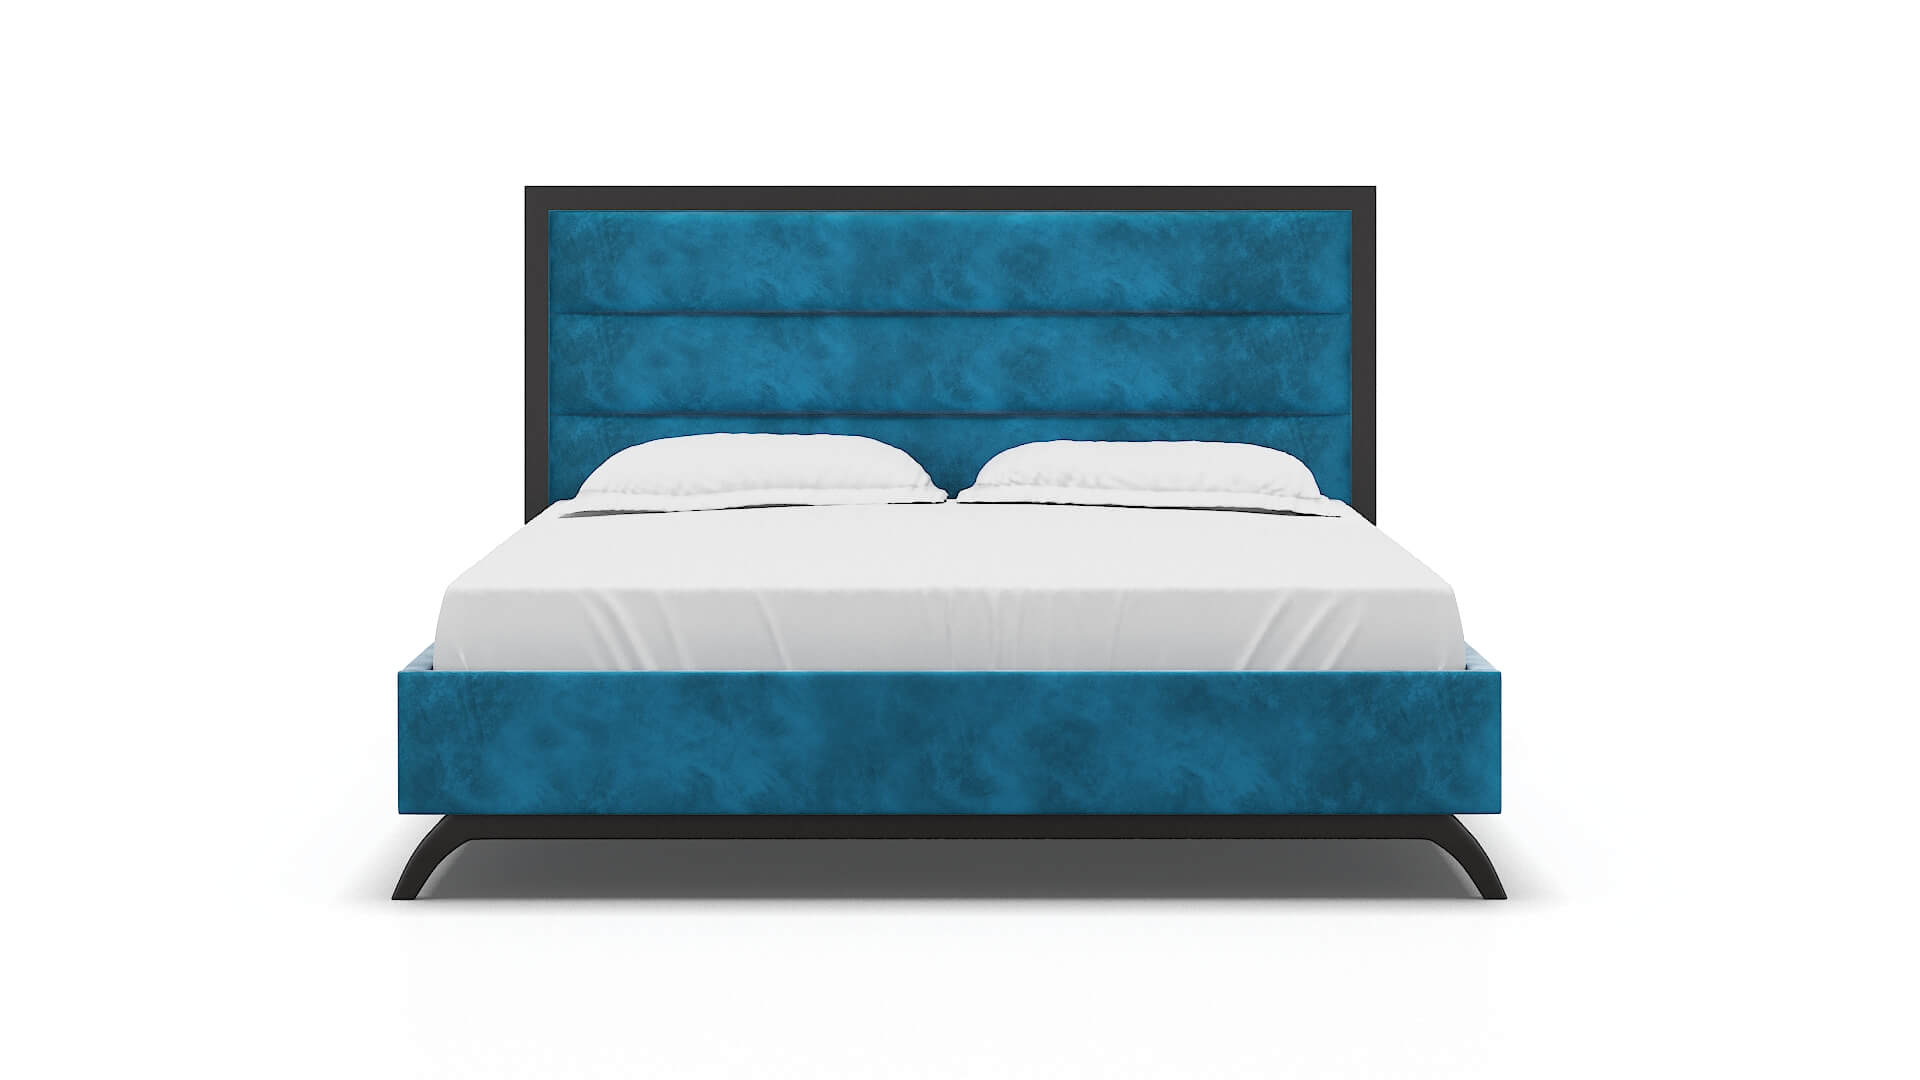 Meliano Buzz Teal Bed King espresso legs 1